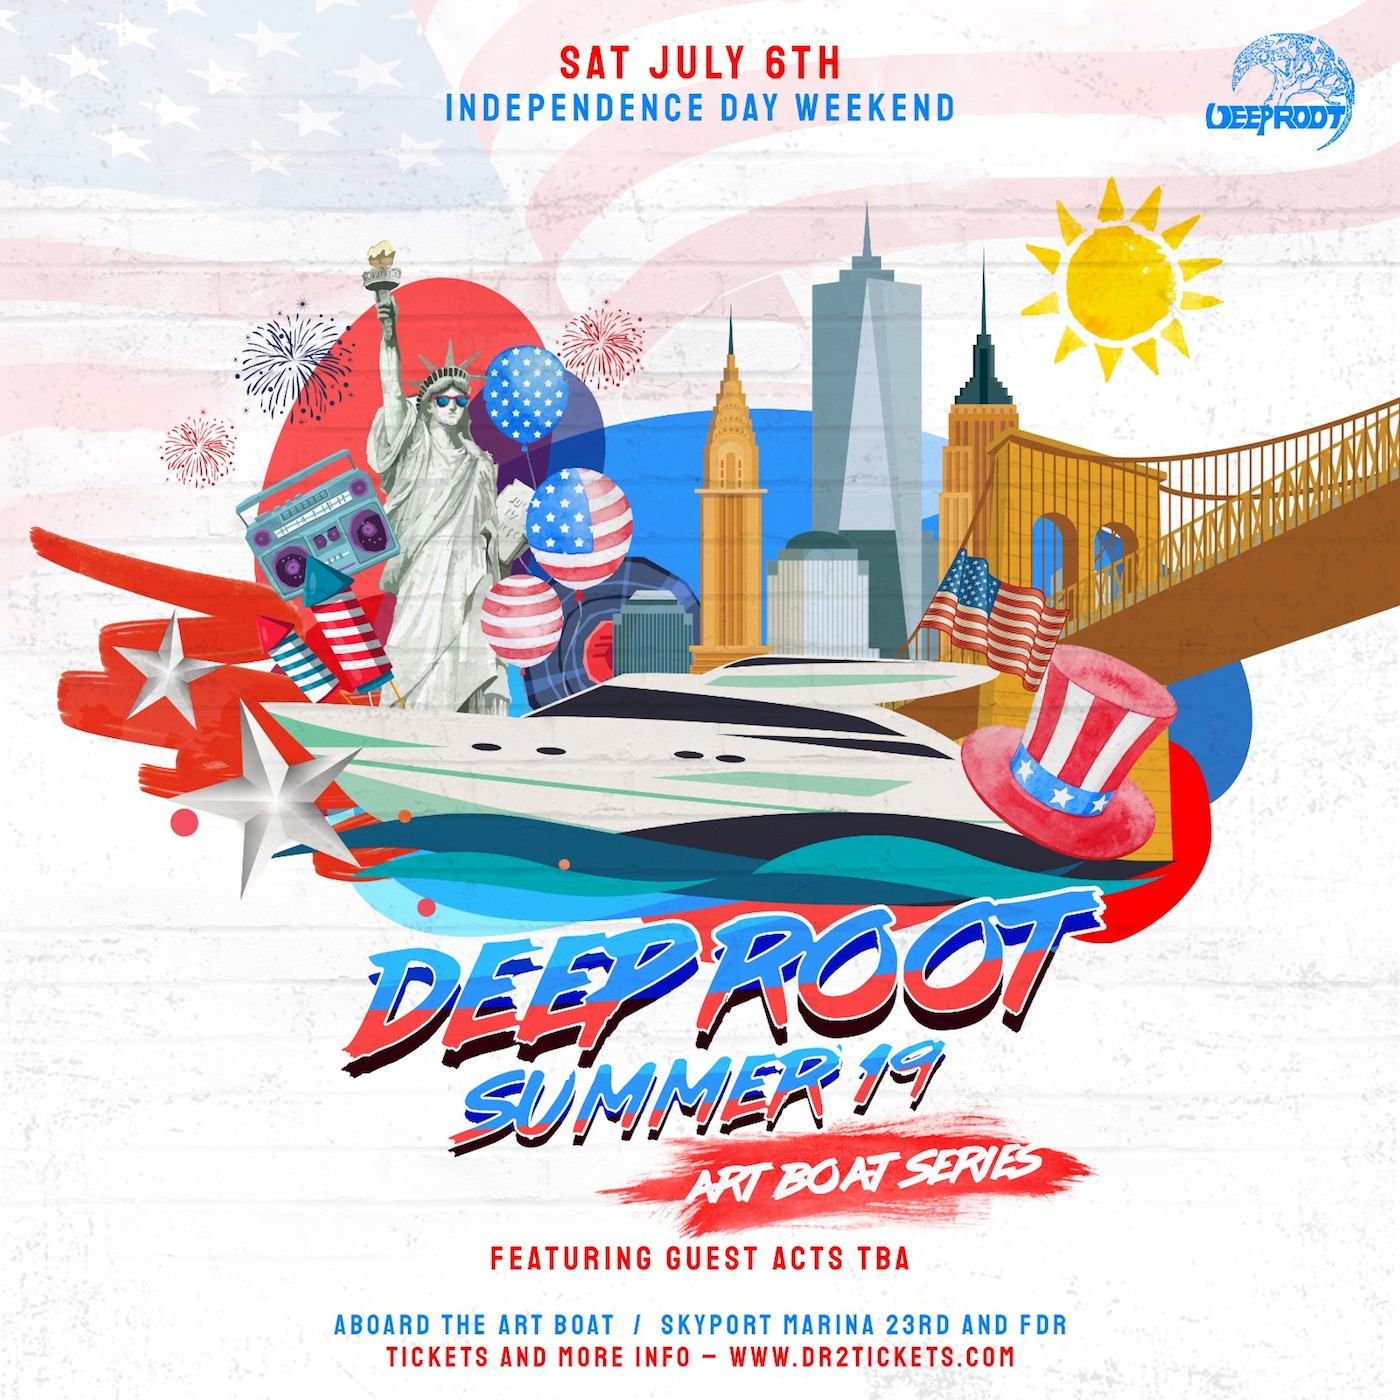 The Art Boat Yacht: July 4th Weekend